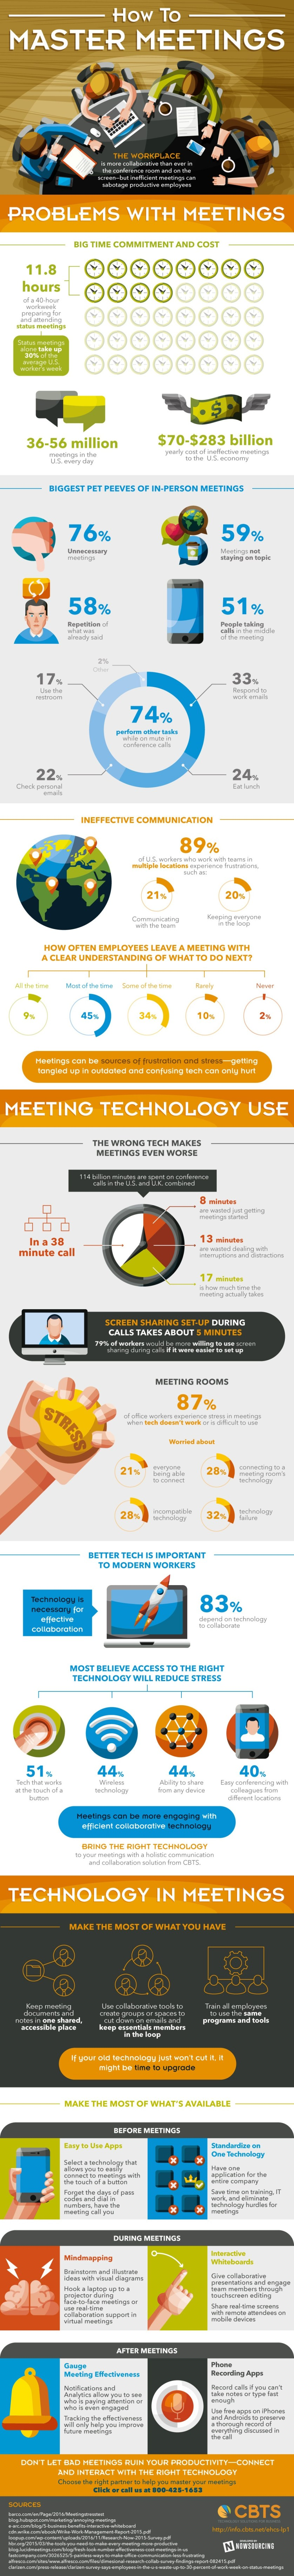 Learn to master meetings with the right technology